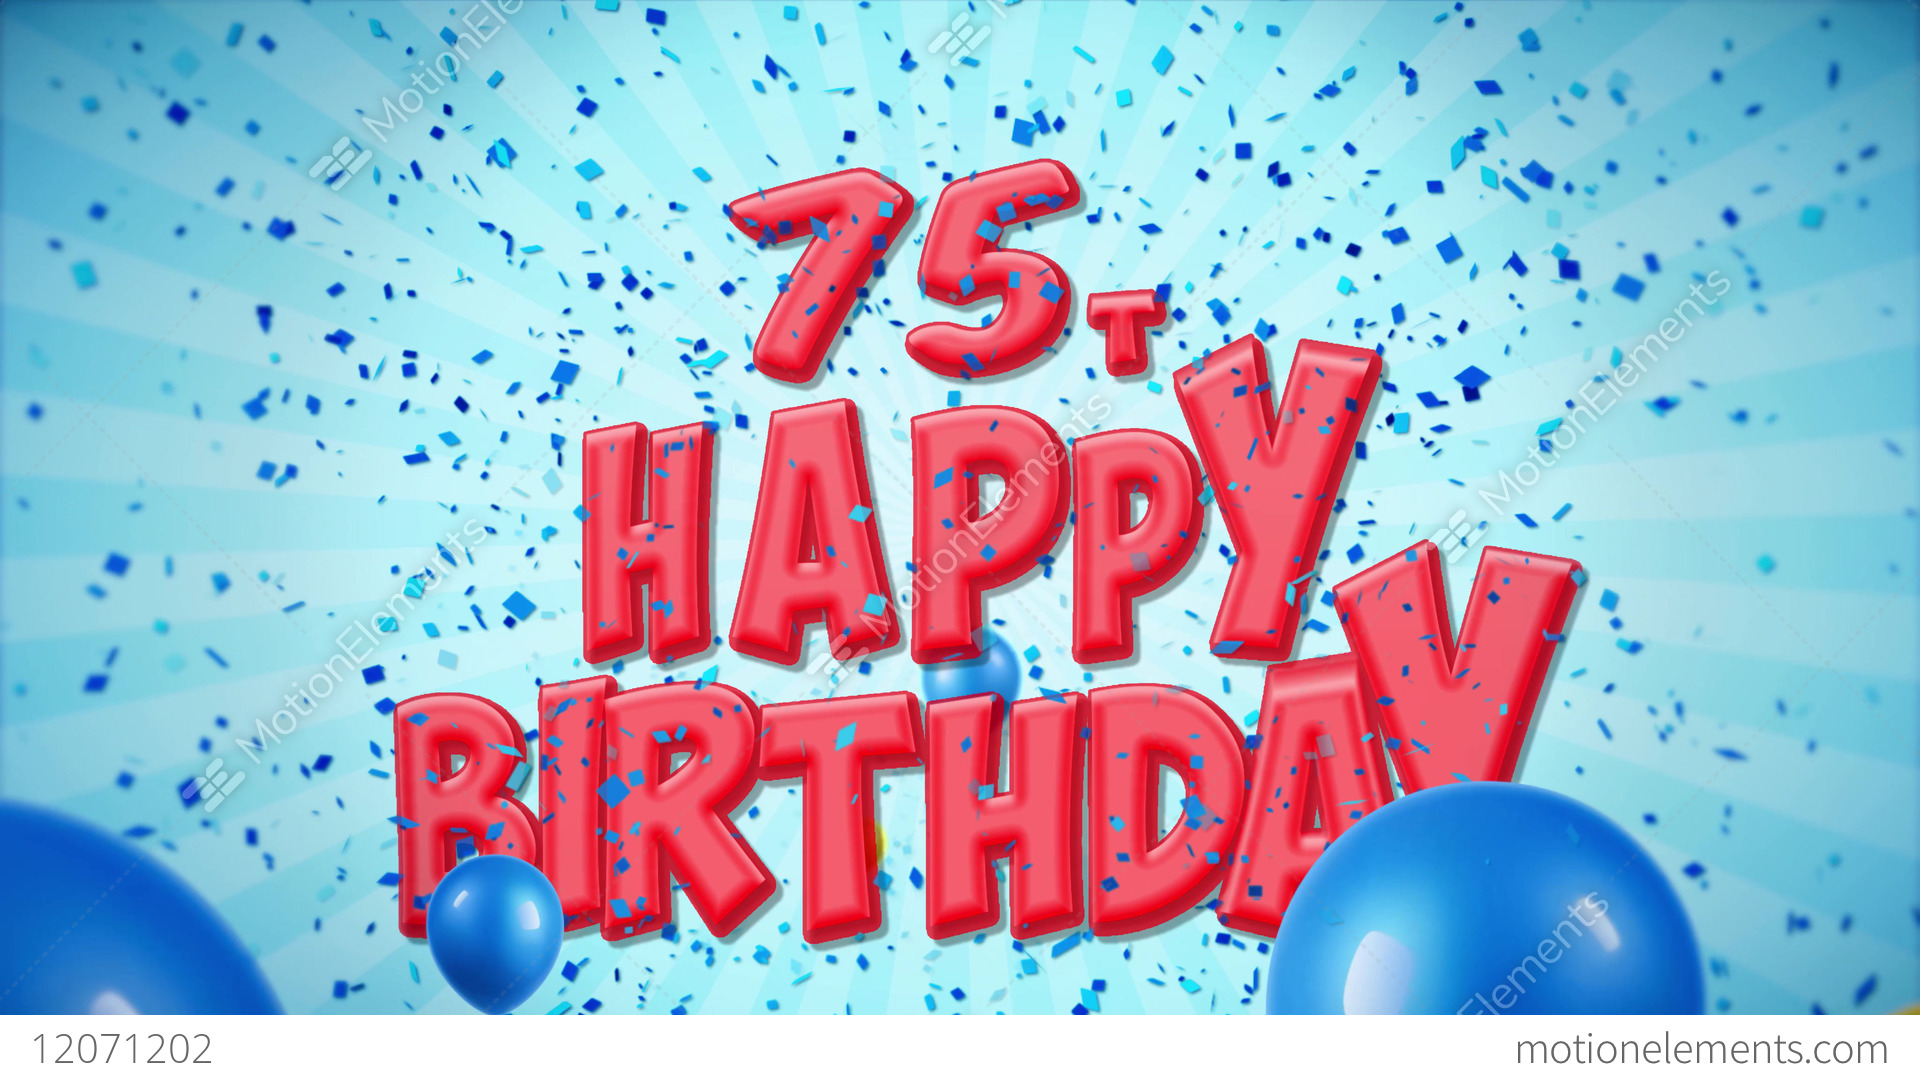 75th Happy Birthday Red Greeting And Wishes With Stock Video Footage